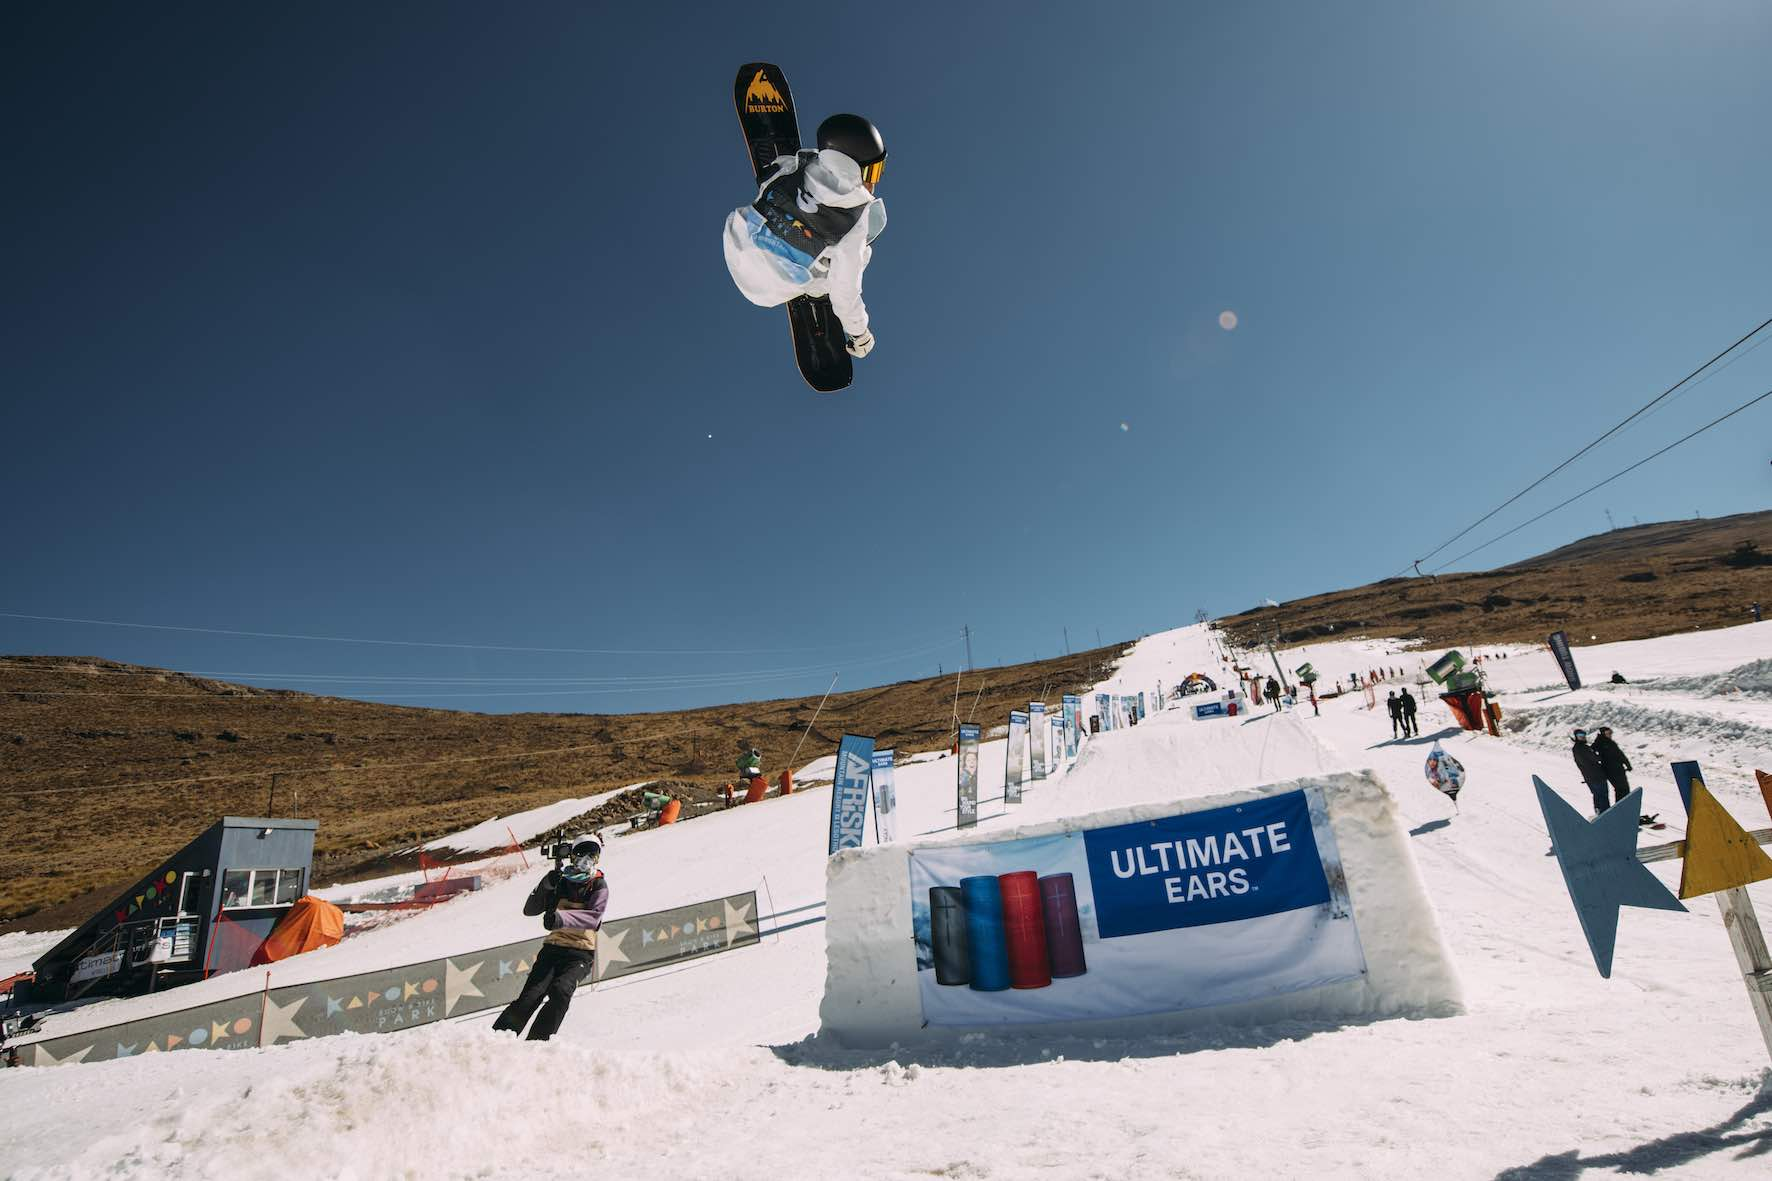 Anthon Bosch competing in the 2019 Ultimate Ears Winter Whip Snowboard and Ski Festival